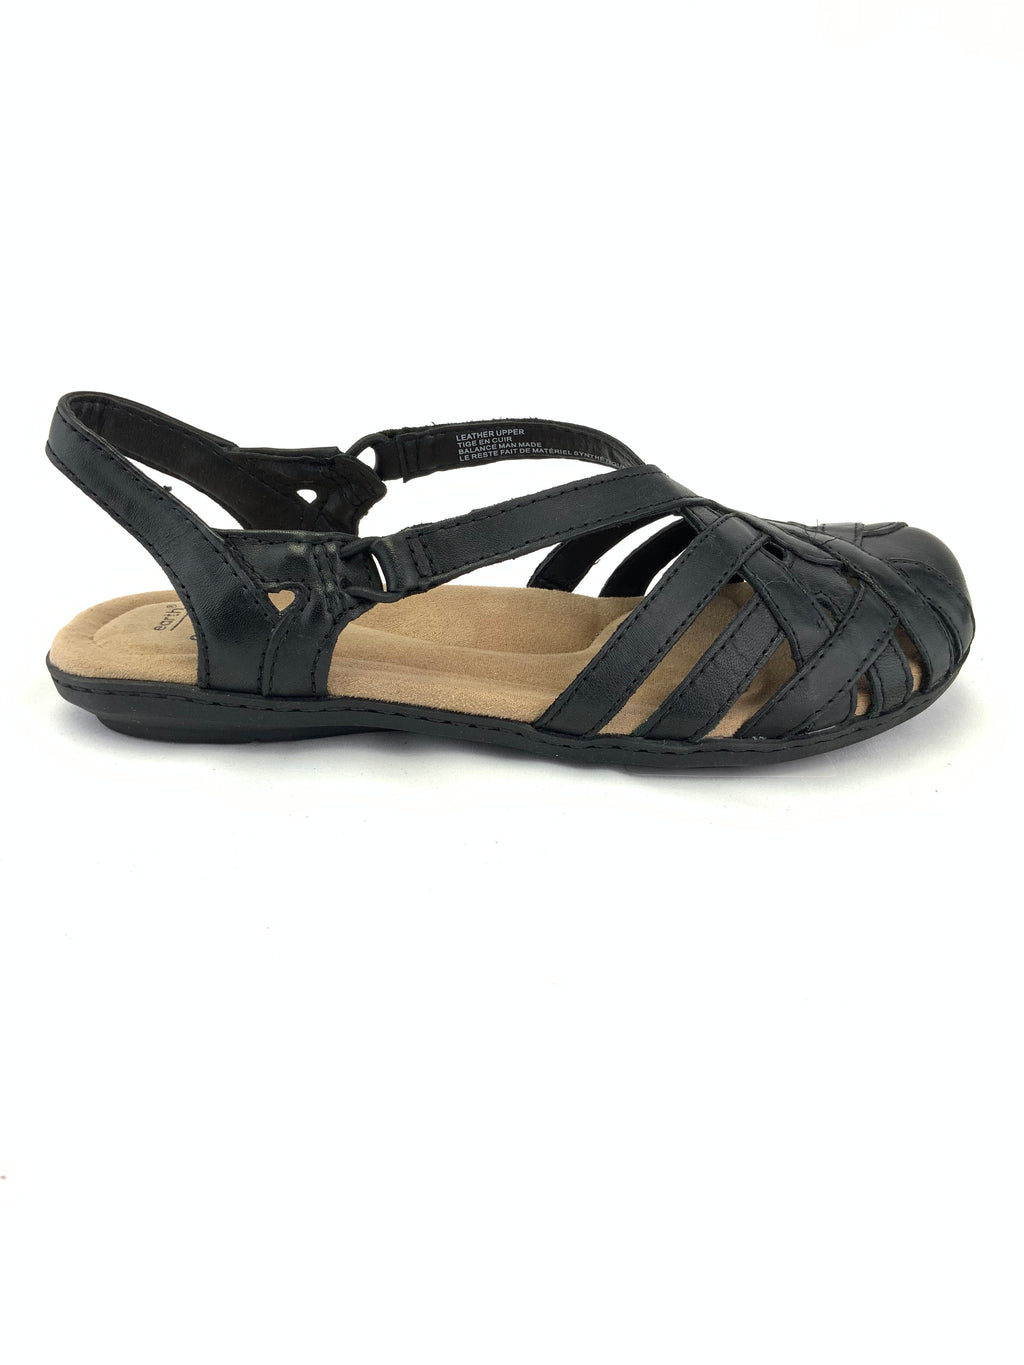 Earth Belle Brielle Sandals Size 5.5M